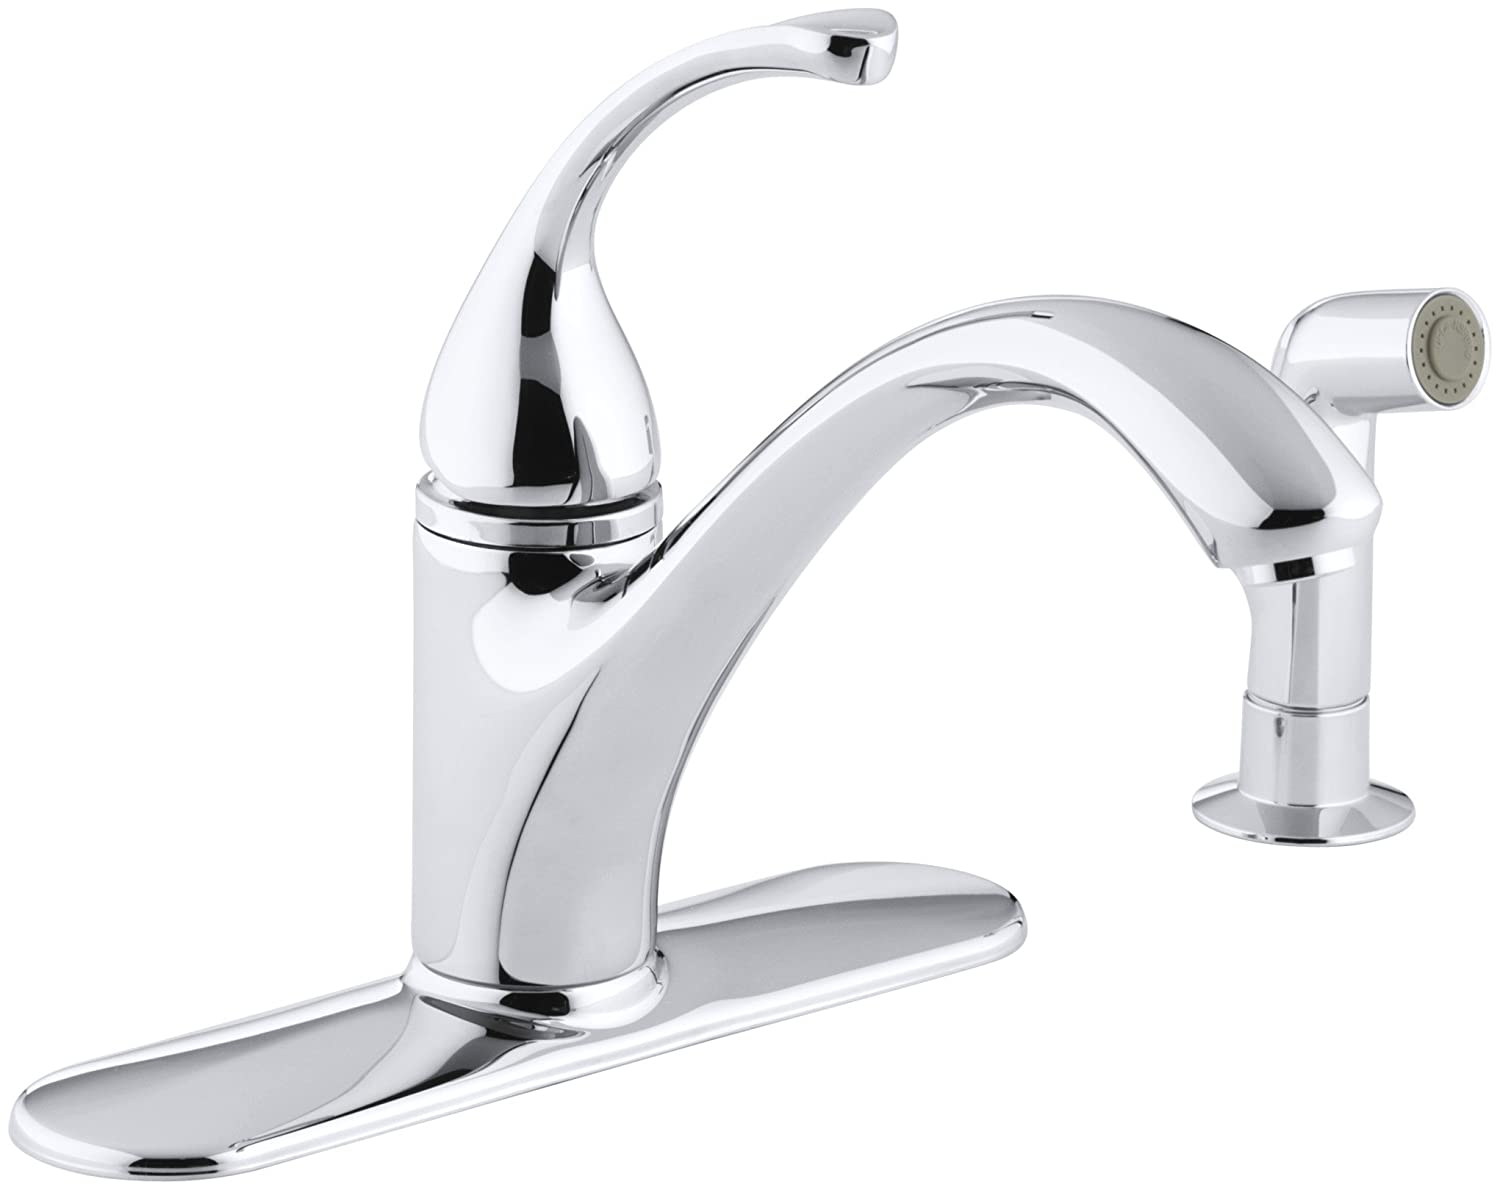 kohler k 10412 cp forte single control kitchen sink faucet polished chrome   touch on kitchen sink faucets   amazon com kohler k 10412 cp forte single control kitchen sink faucet      rh   amazon com